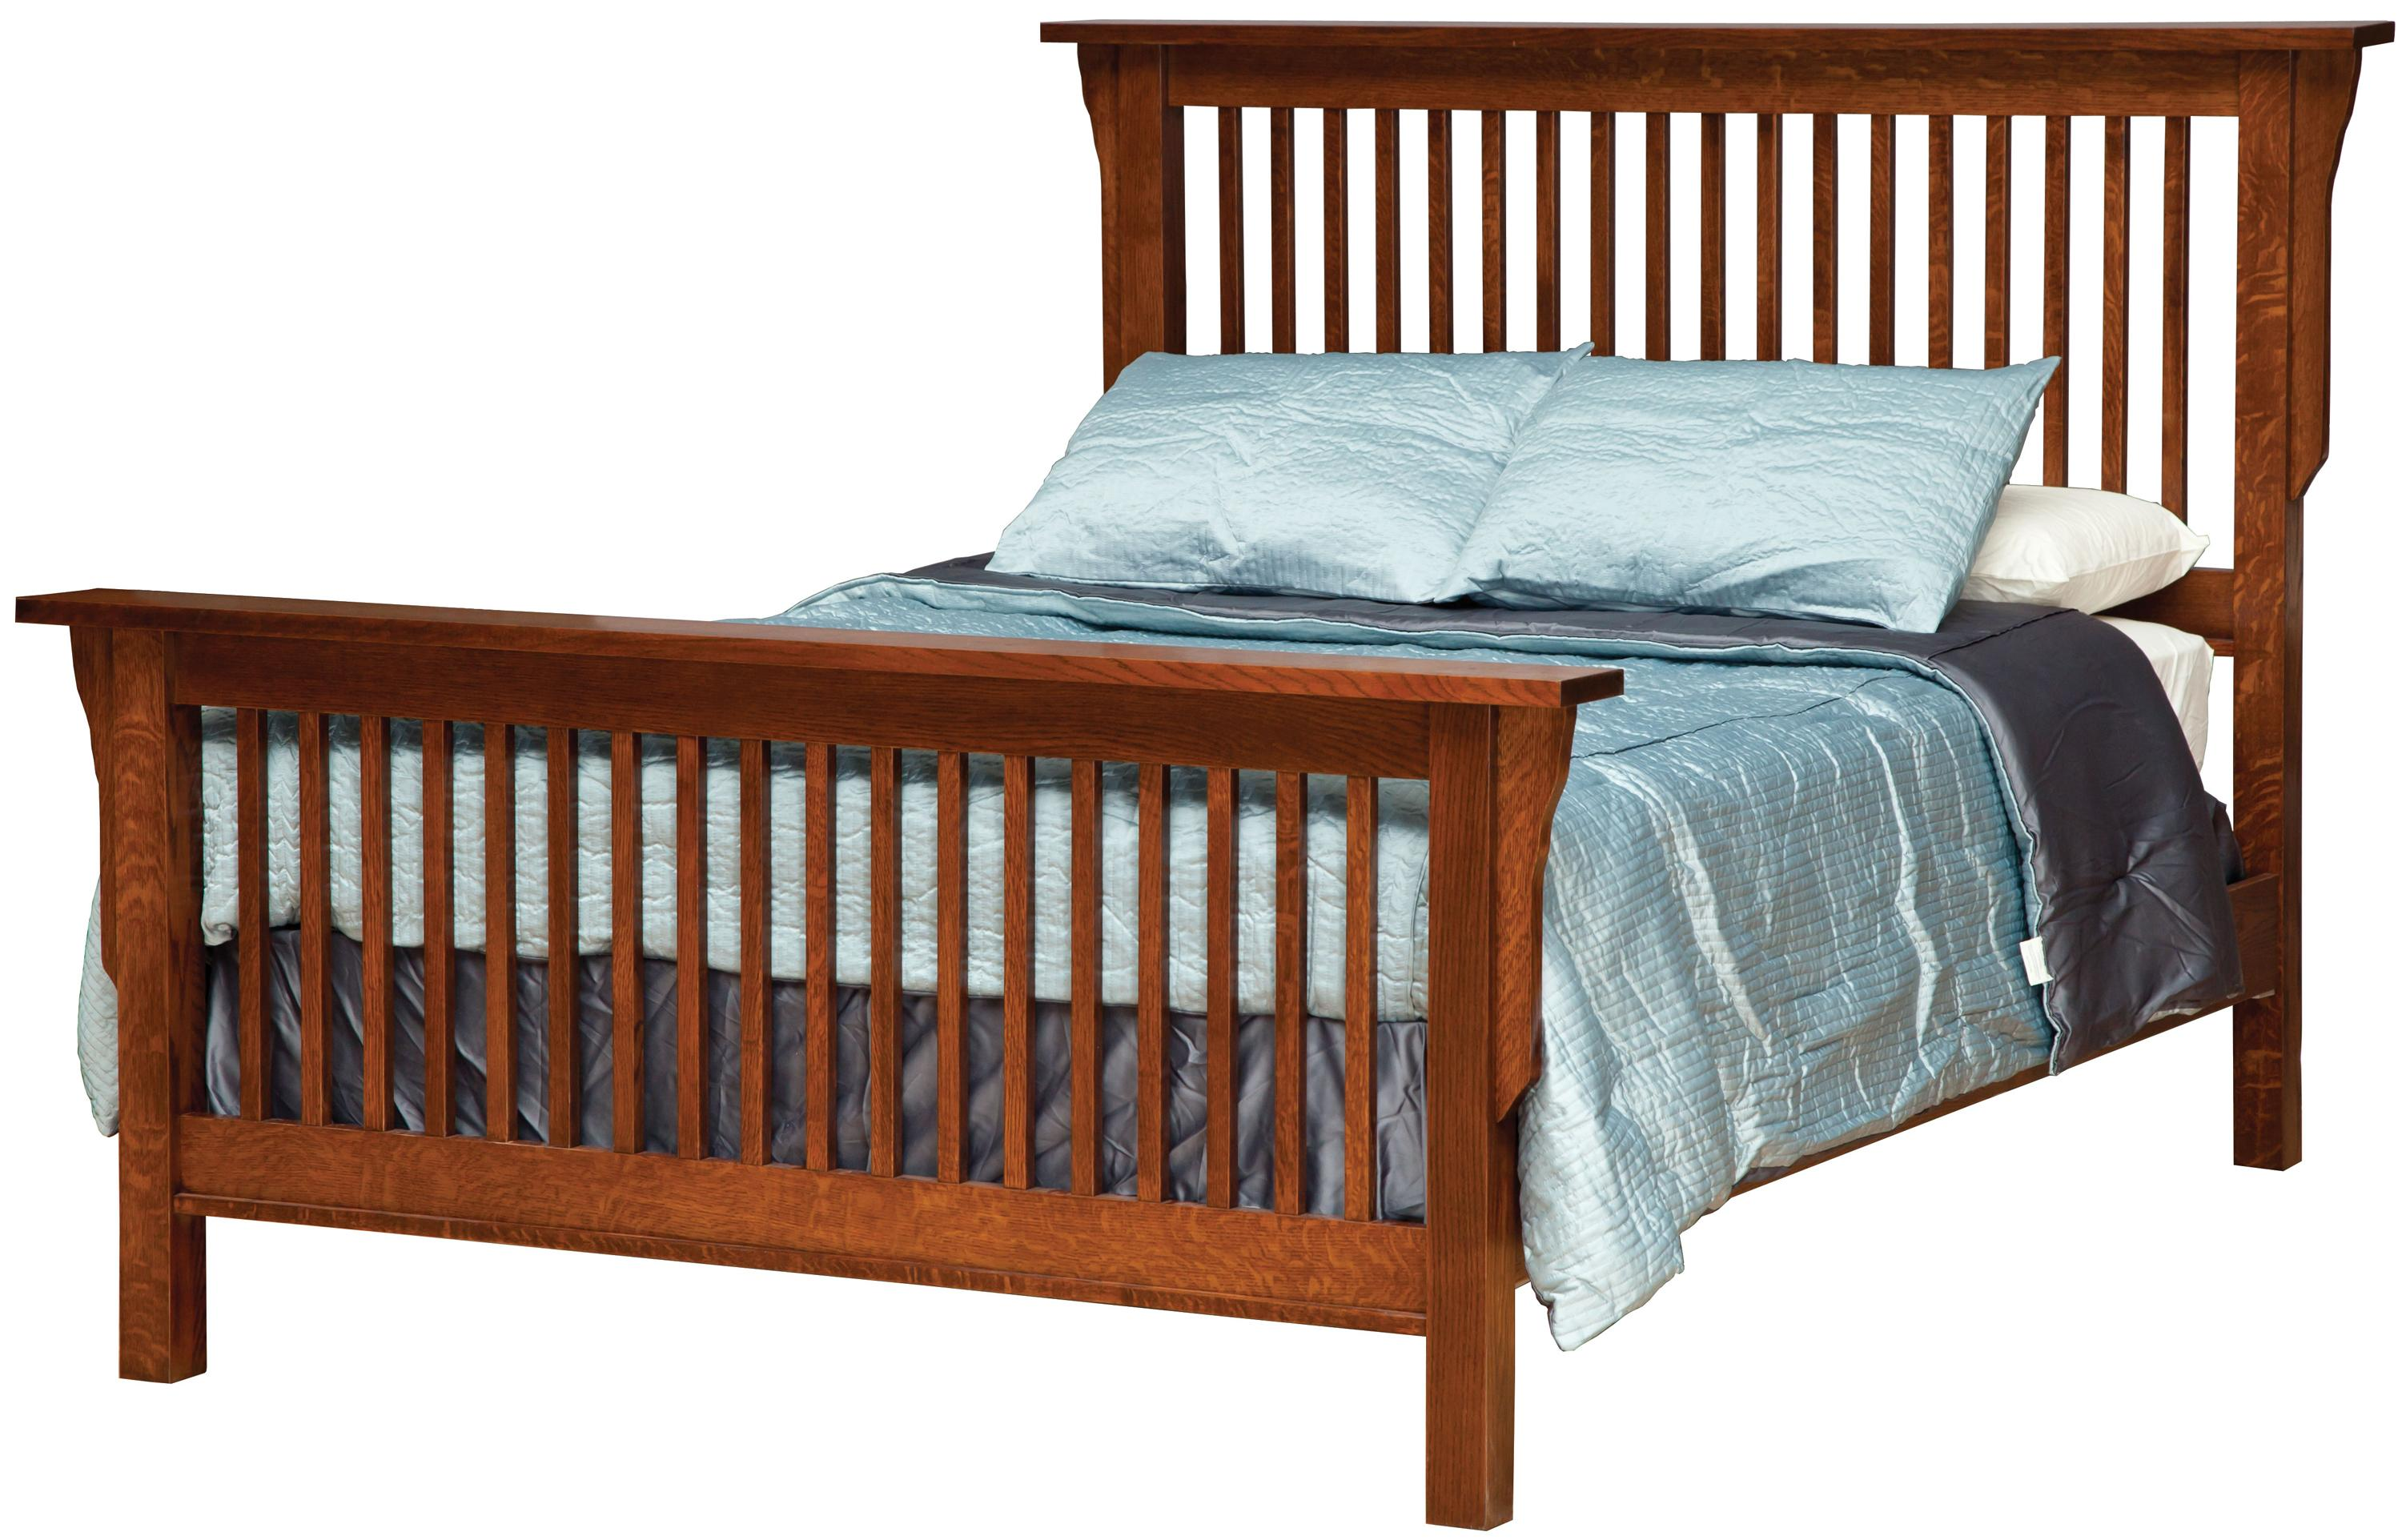 Mission Full Frame Bed  by Daniel's Amish at Lapeer Furniture & Mattress Center